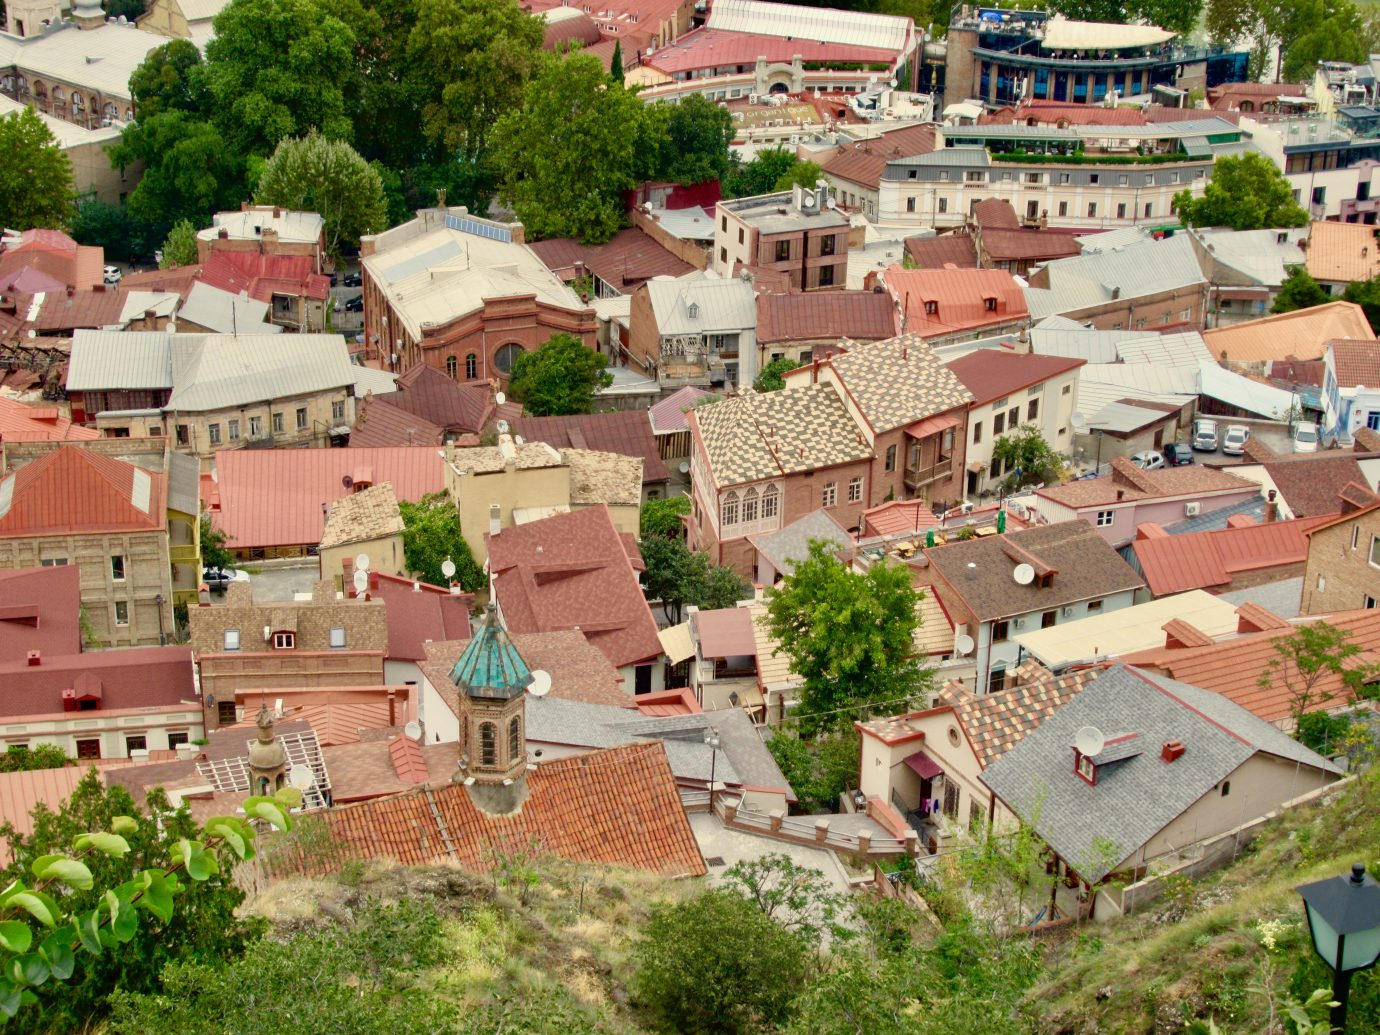 Overhead view of Old Town in Tbilisi